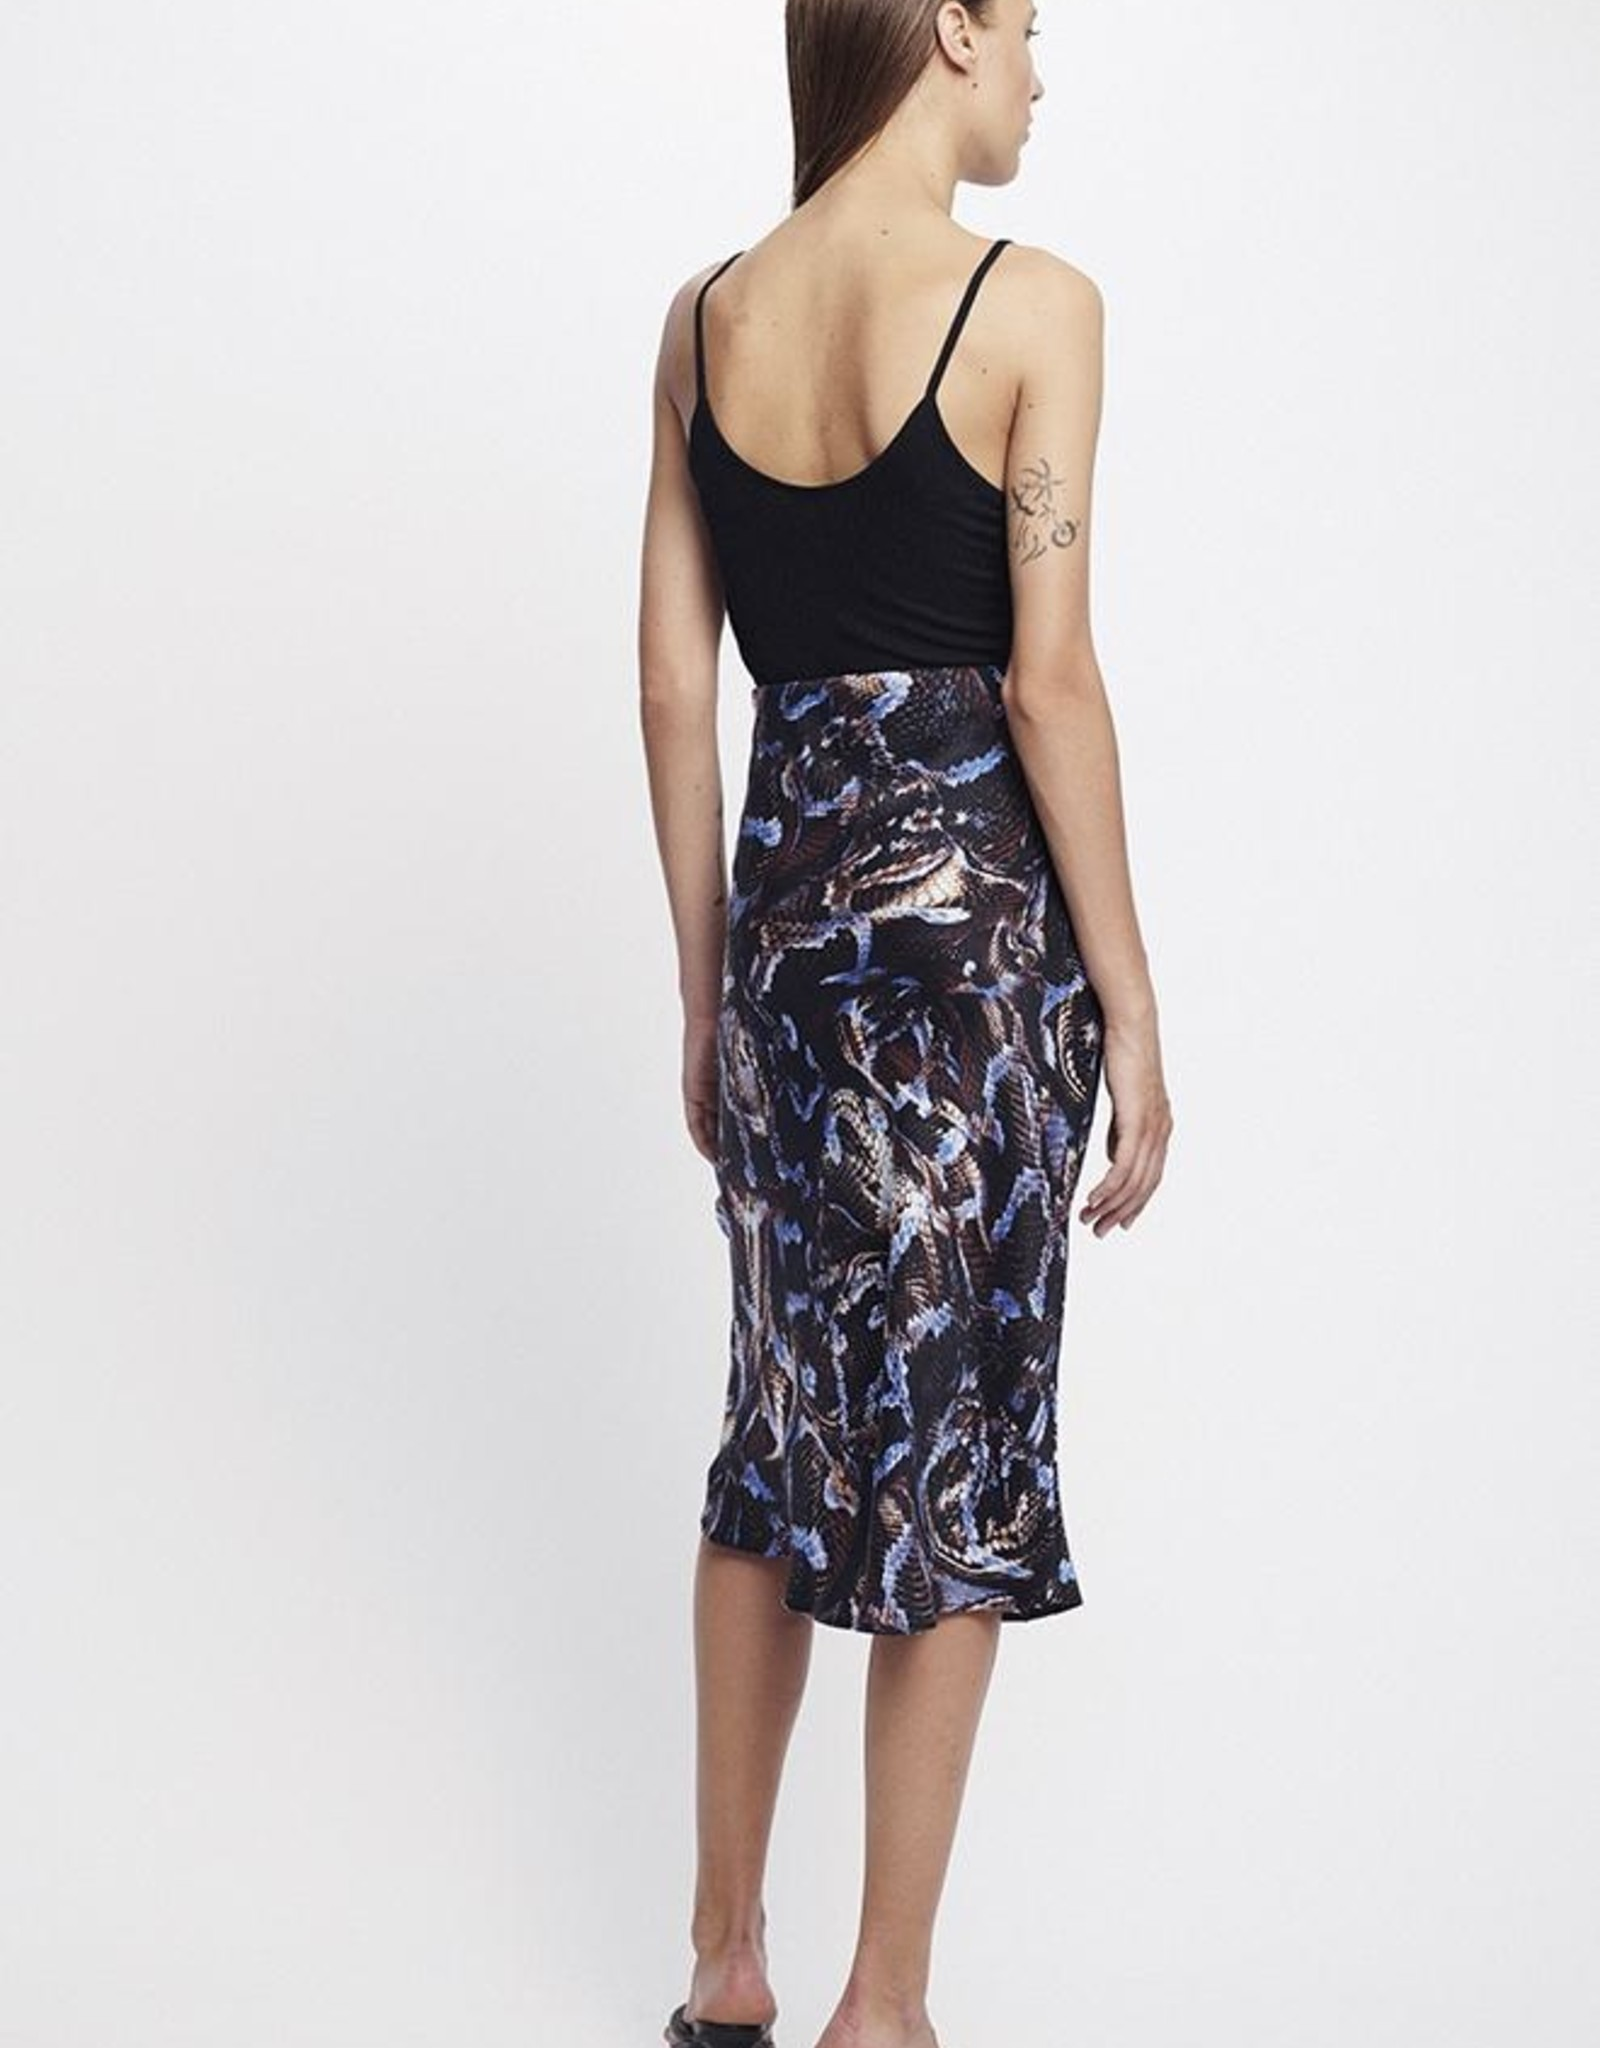 SILK LAUNDRY BIAS CUT SKIRT SNAKE